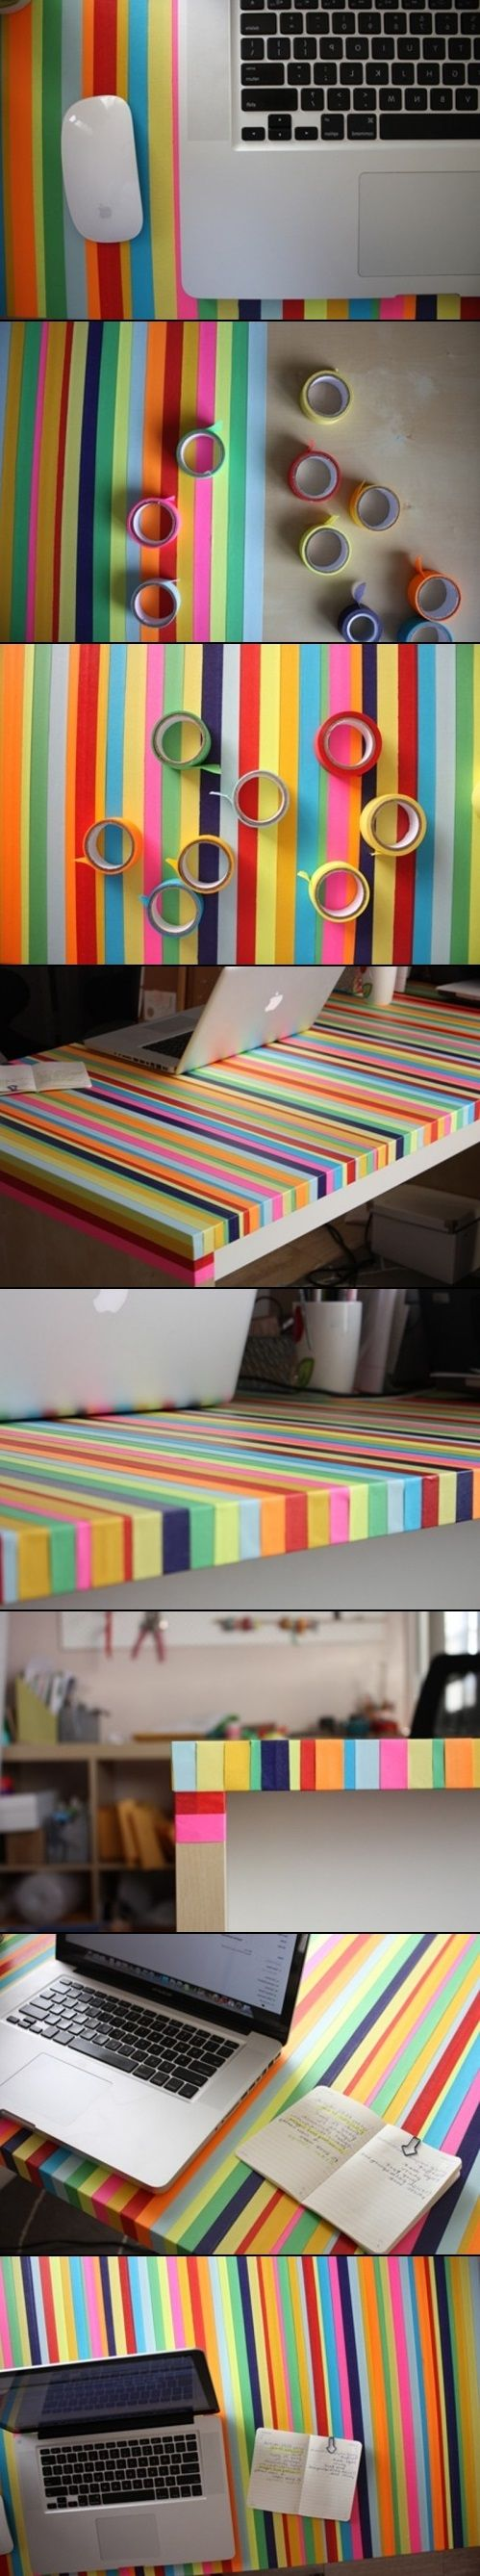 DIY Computer Desk Renovation. Cool idea for a lot of different things! Accidentally bought these random backless, unfinished wooden pic frames, so I could sand those down and try it on them! I could also decorate my own personalized notebooks, and my son's dresser top and a sunburst mirror, etc...  Possibilities are endless! :]